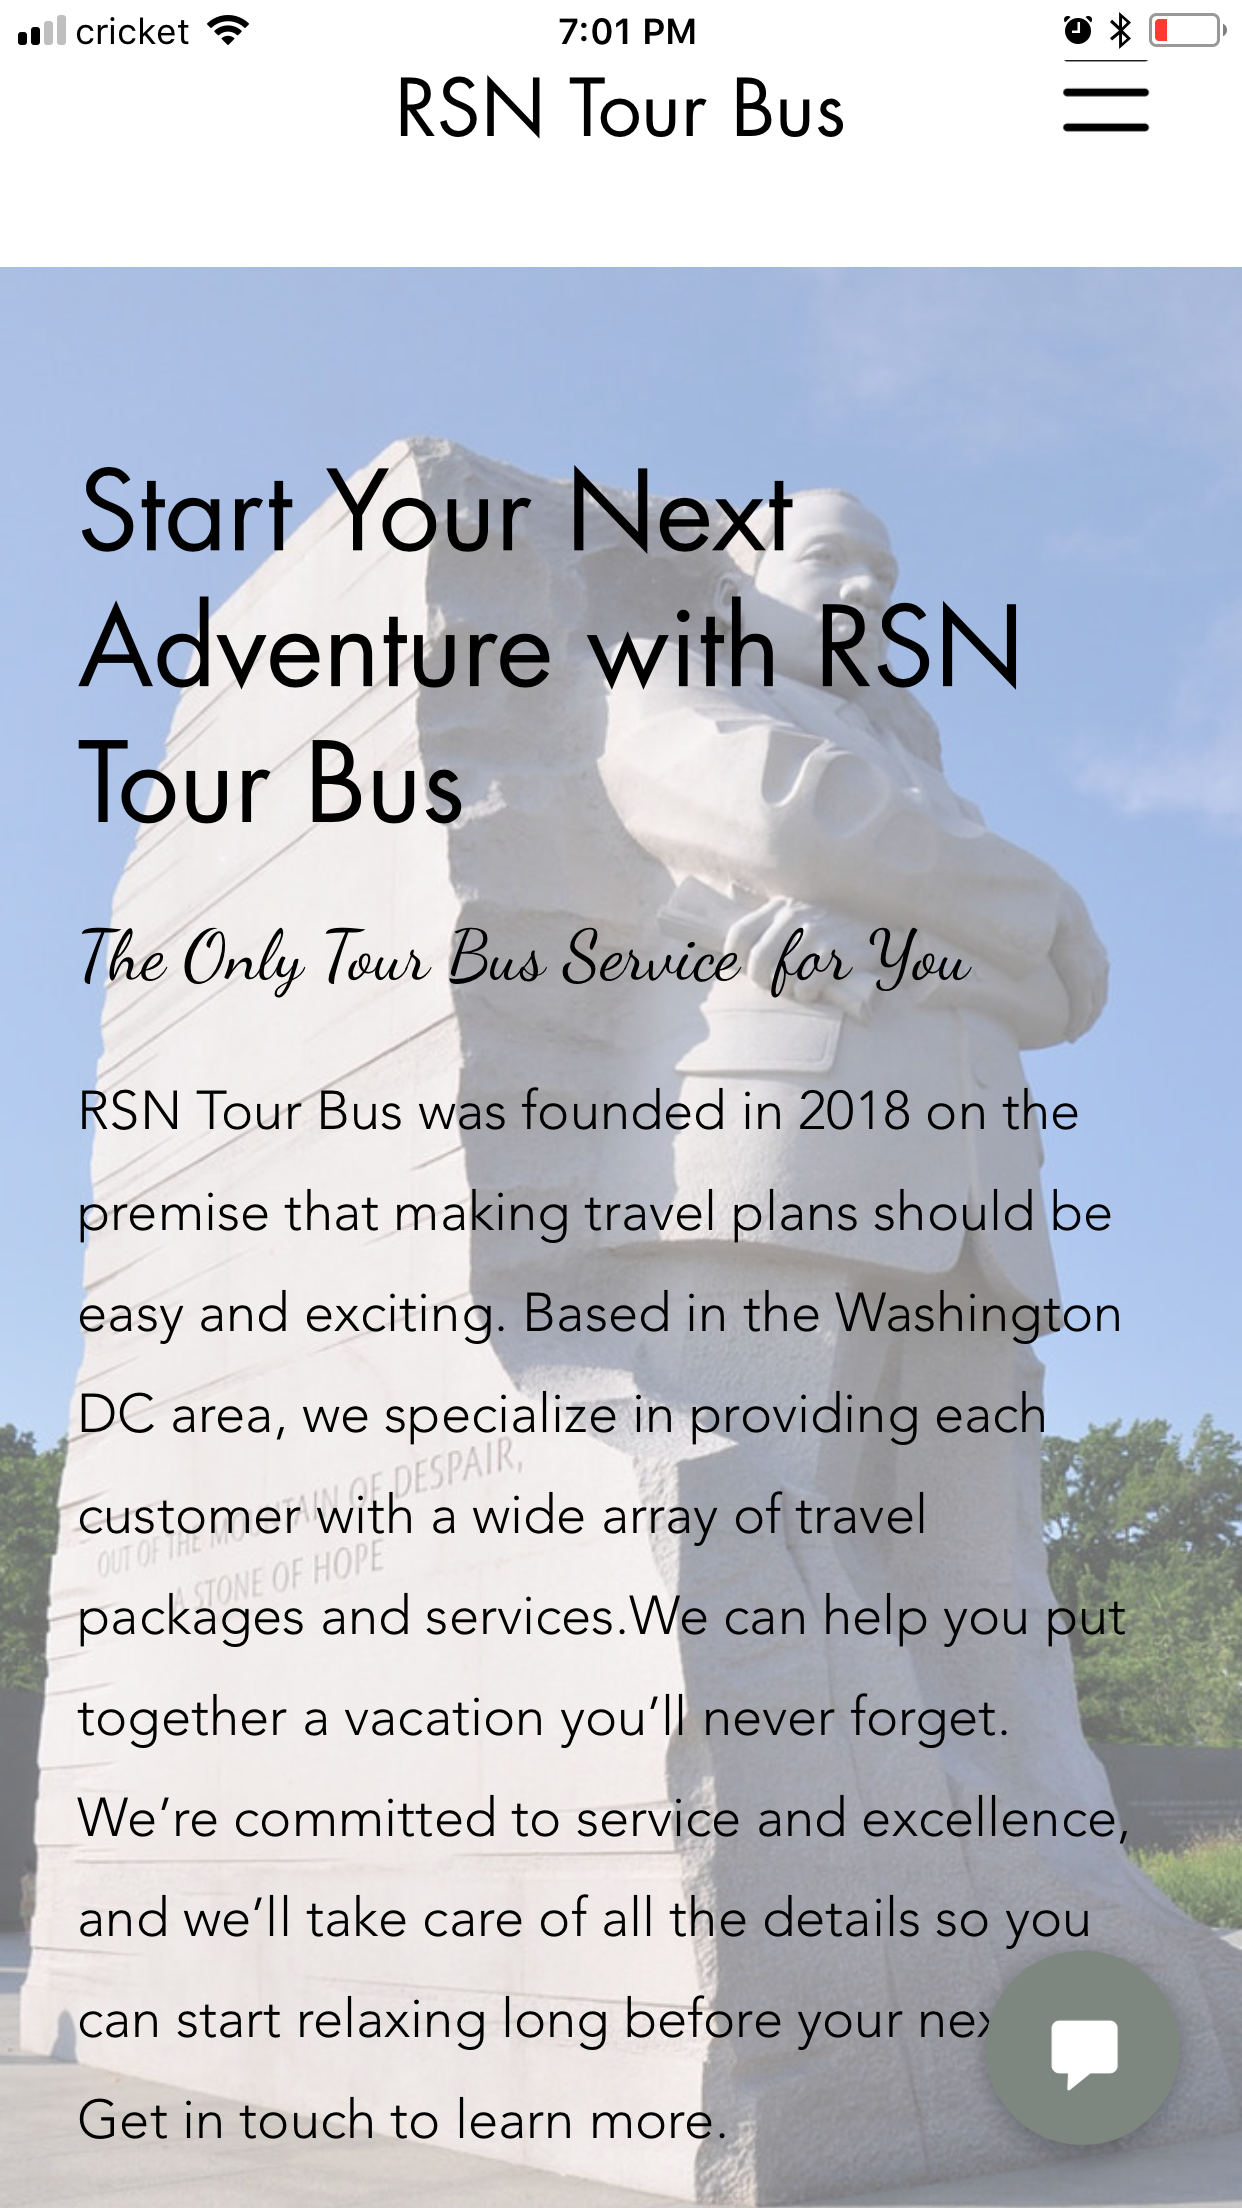 Deluxe tour:2 days pass $789